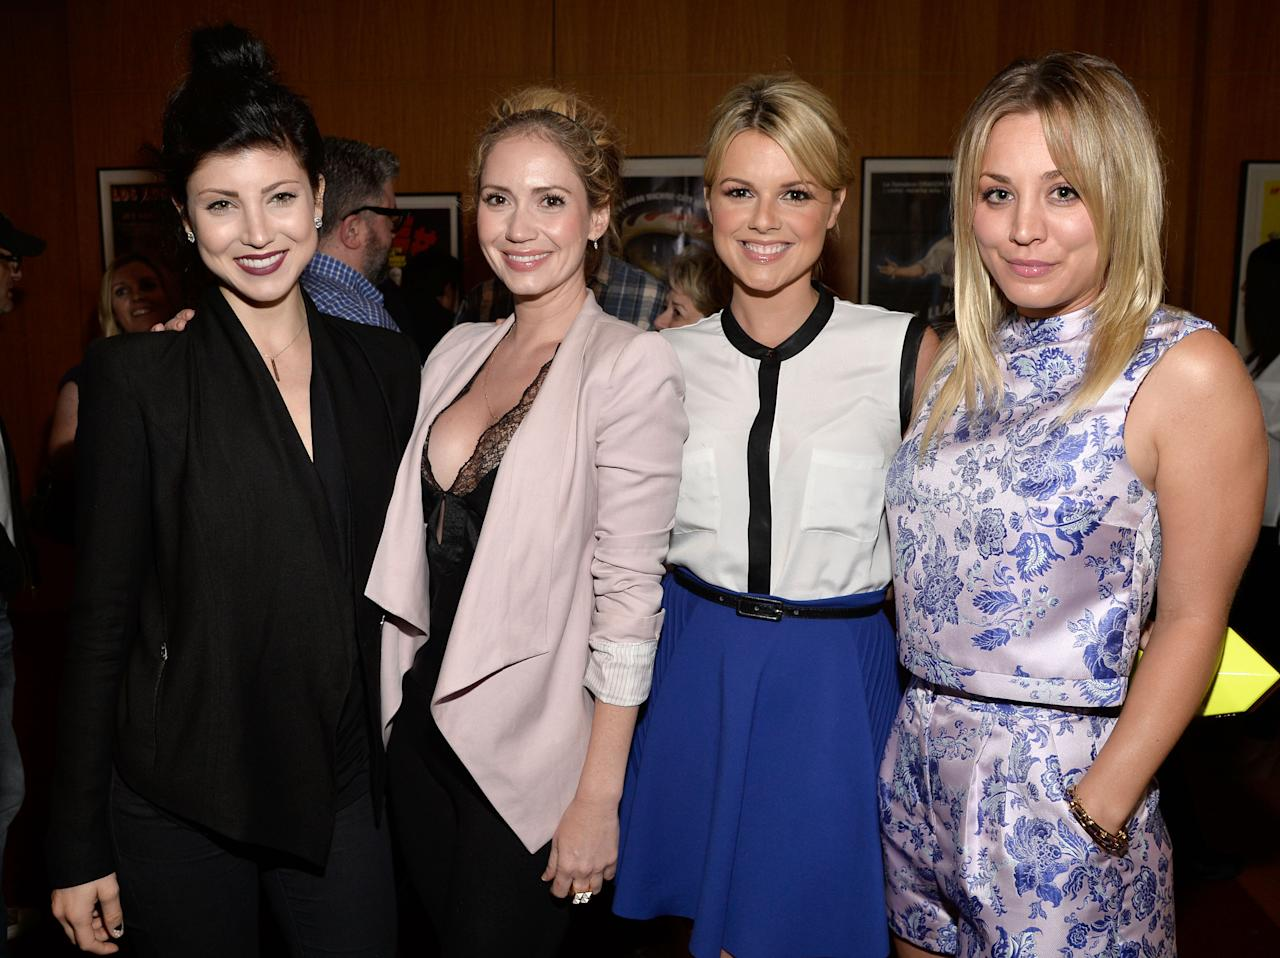 """BEVERLY HILLS, CA - JULY 24:  (L-R) Actresses Briana Cuoco, Ashley Jones, Ali Fedotowsky and Kaley Cuoco attend the after party for the premiere of """"Blue Jasmine"""" hosted by AFI & Sony Picture Classics at AMPAS Samuel Goldwyn Theater on July 24, 2013 in Beverly Hills, California.  (Photo by Frazer Harrison/Getty Images for AFI)"""